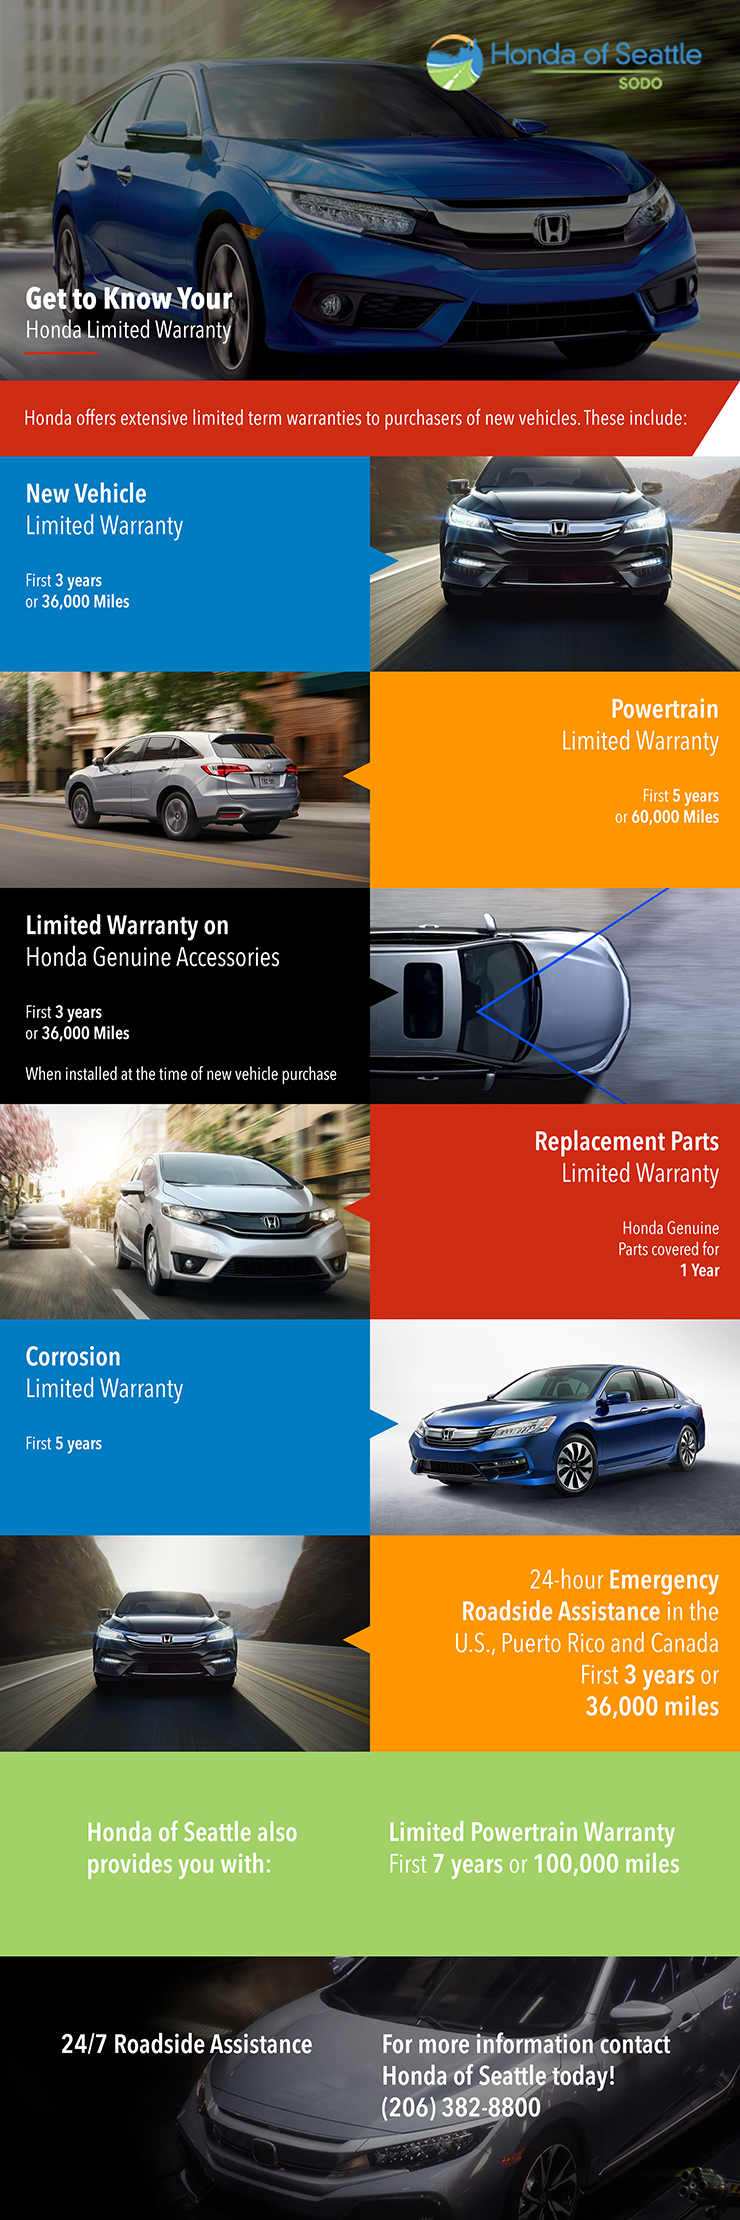 Infographic get to know the honda limited warranty for Honda of seattle